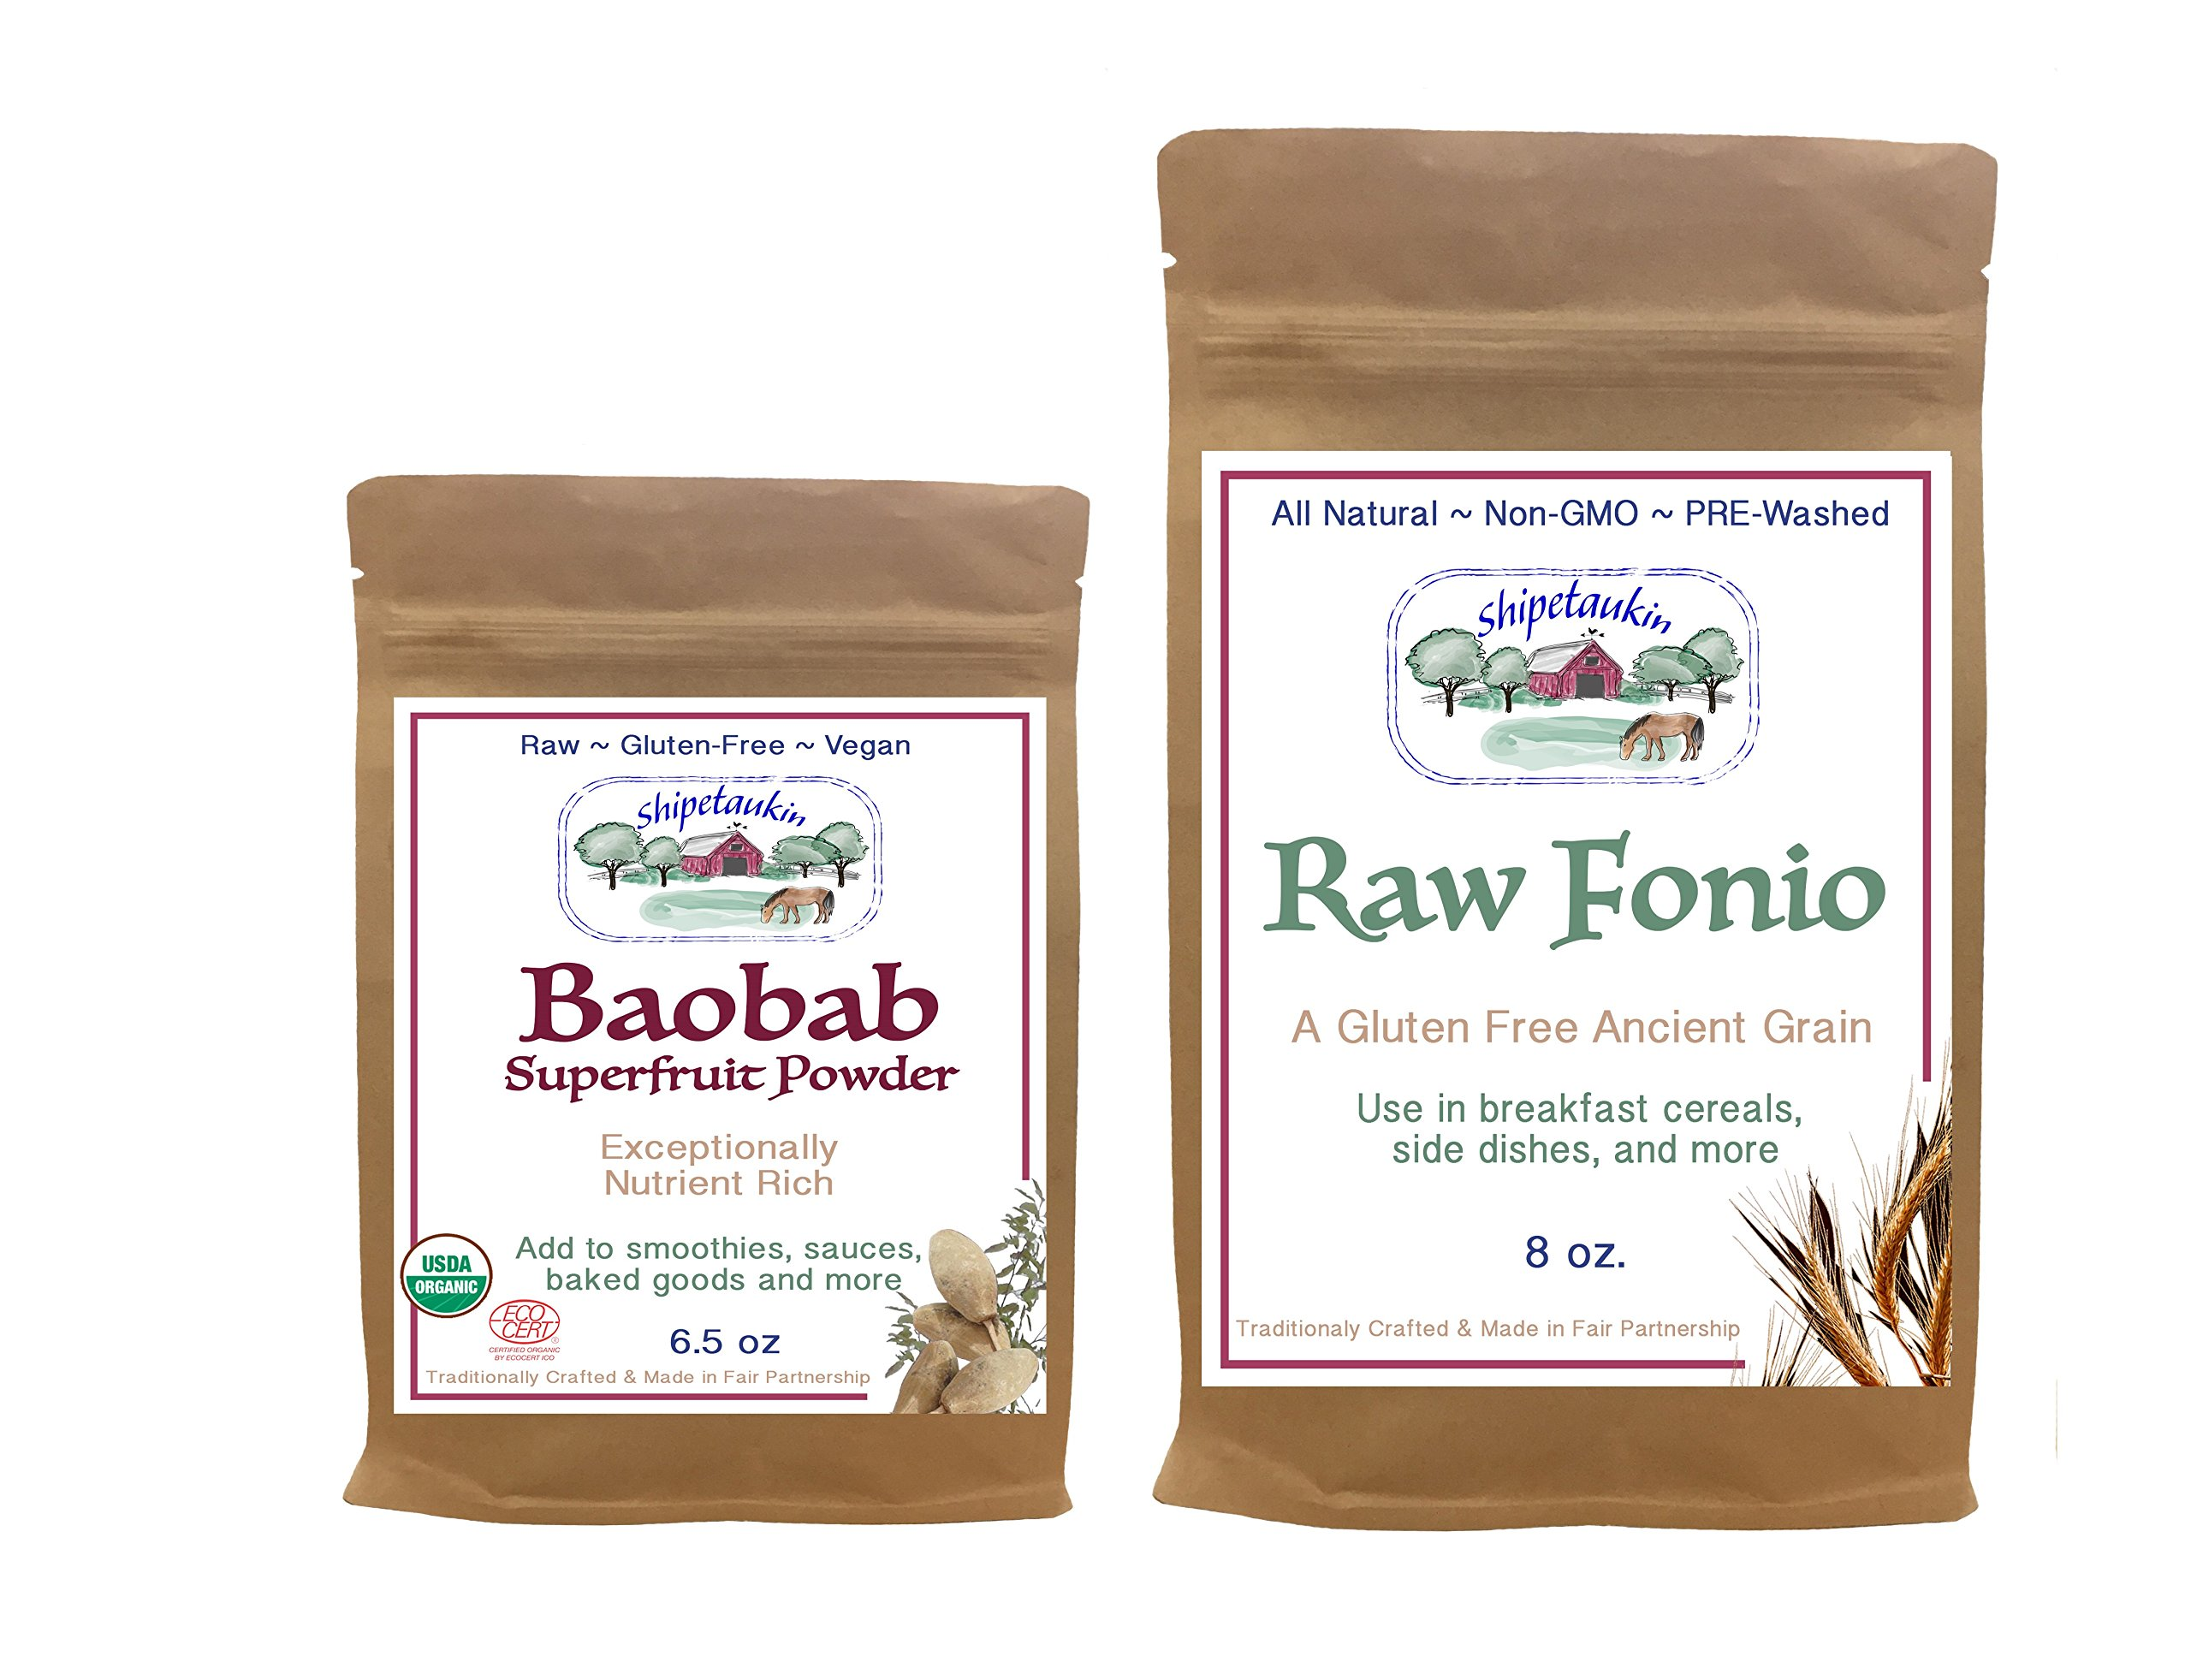 Shipetaukin Flavors of Africa Sampler Bundle: (1) Raw Fonio Ancient African Gluten Free Grain (8 Ounces), and (1) Baobab Superfruit Smoothie and Sauce Thickening Powder (6.5 Ounces) by Shipetaukin